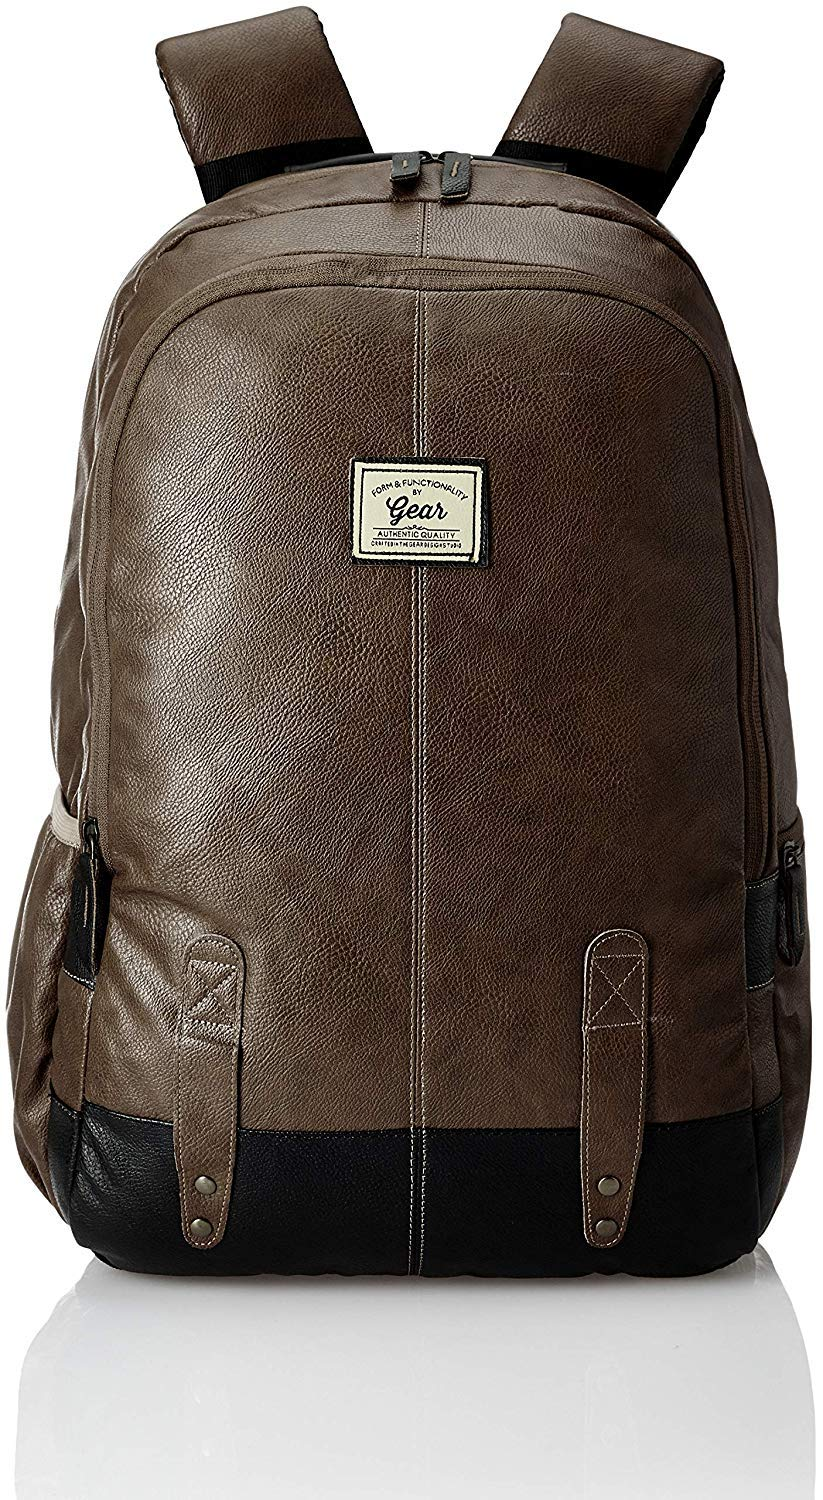 Gear Classic Anti Theft Faux Leather 20 Ltrs Brown Laptop Backpack (LBPCLSLTH0201) product image